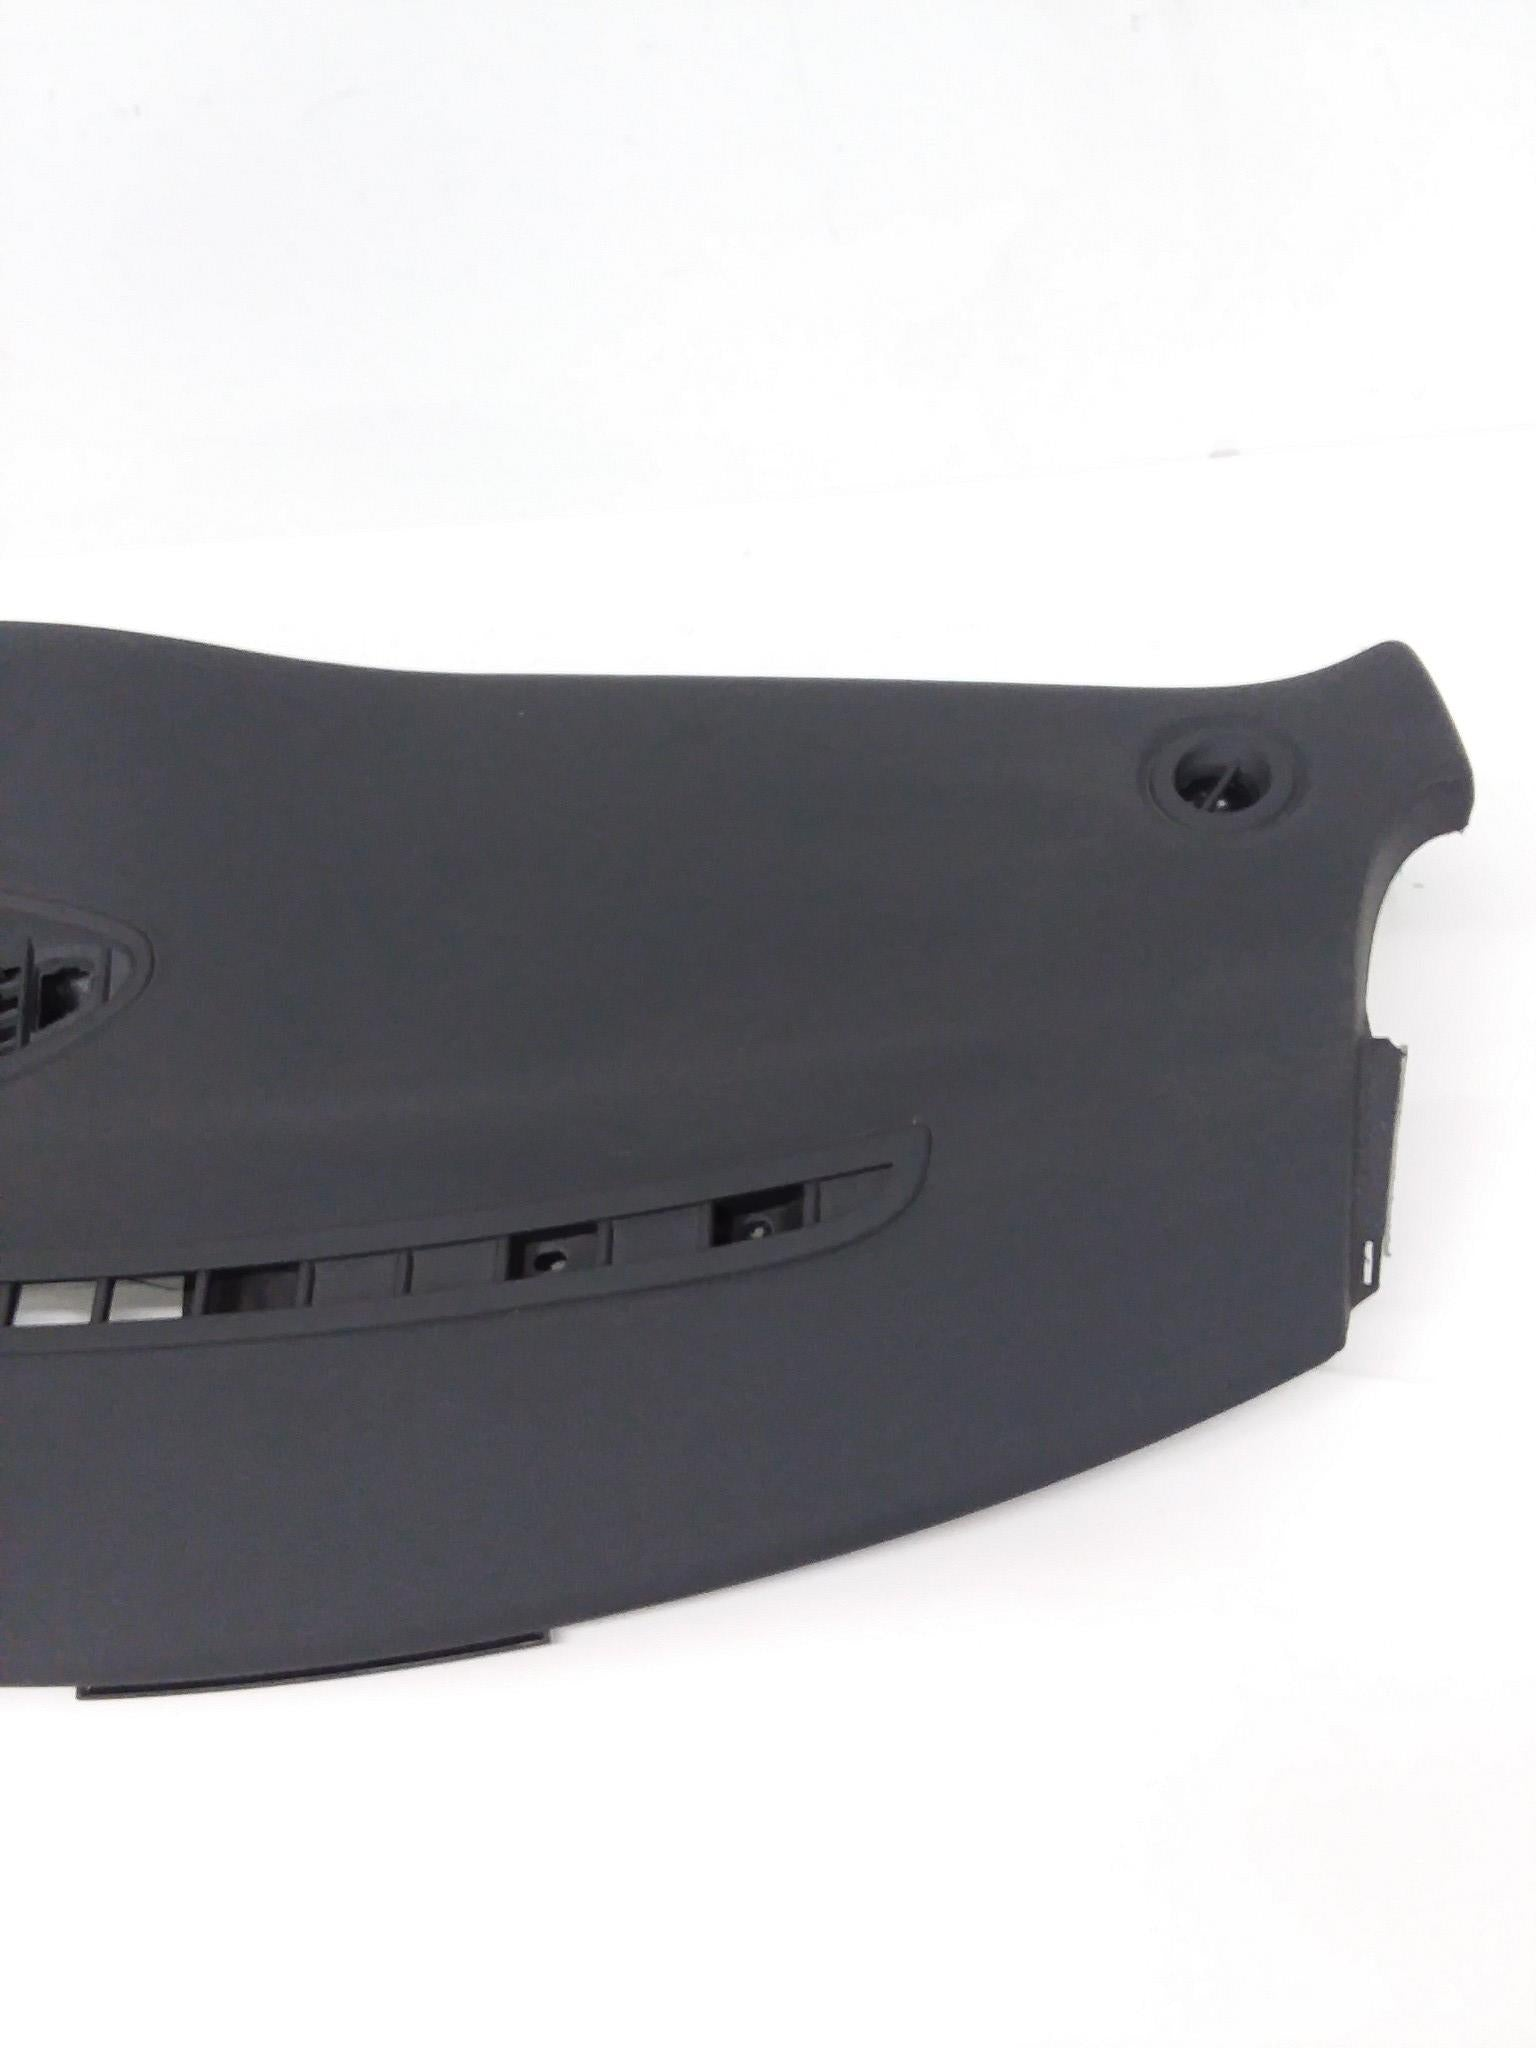 2002-2008 MINI COOPER R50 R52 R53 DASHBOARD DASH BOARD PANEL WITHOUT AIRBAG OEM - Click Receive Auto Parts